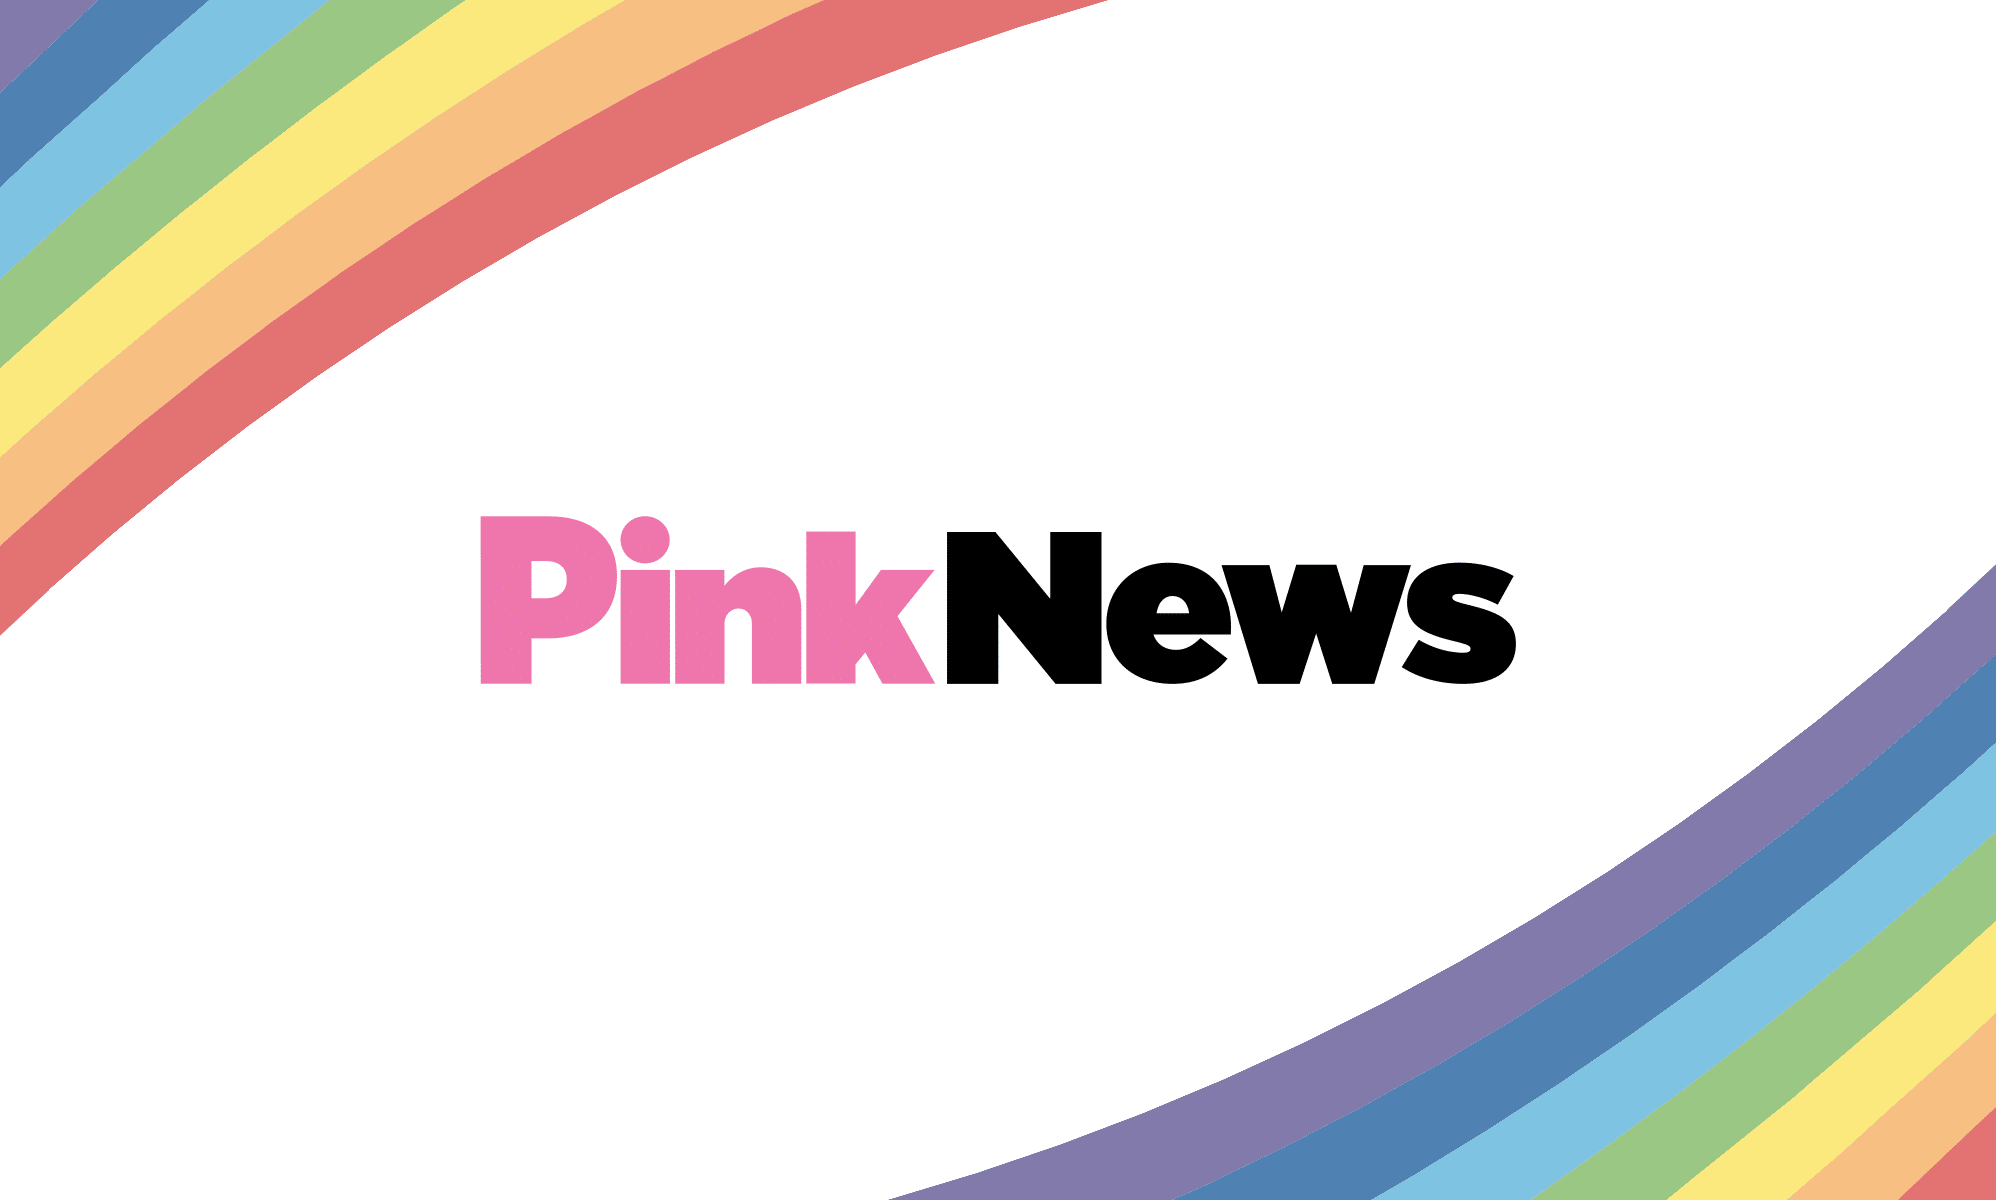 All gay and bisexual men should recieve HPV vaccine according to new study